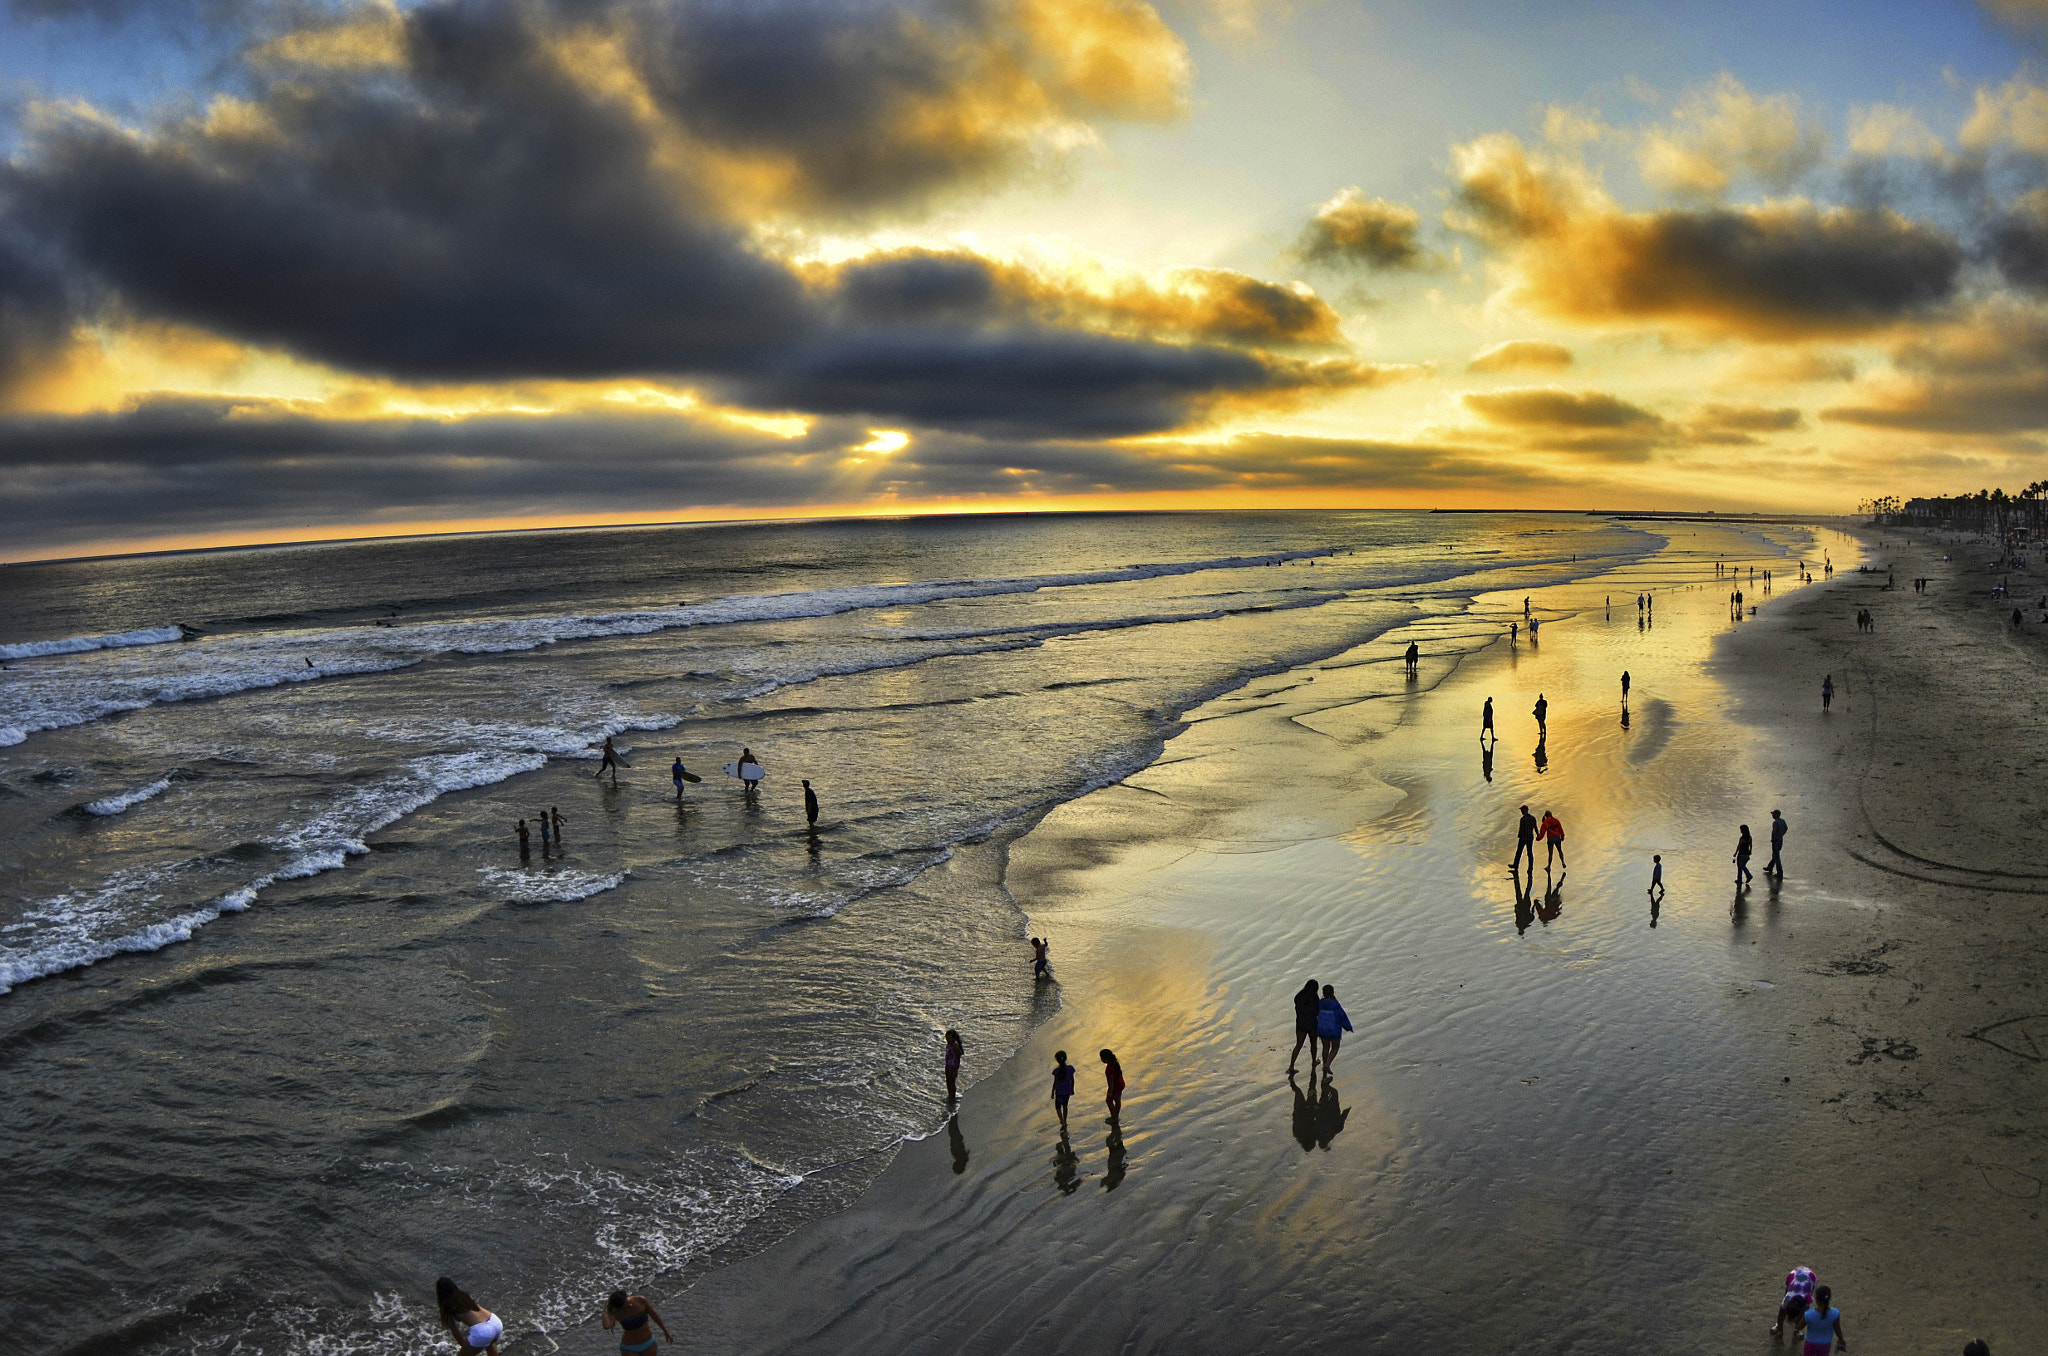 Photograph Low Tide in Oceanside - August 5, 2012 by Rich Cruse on 500px